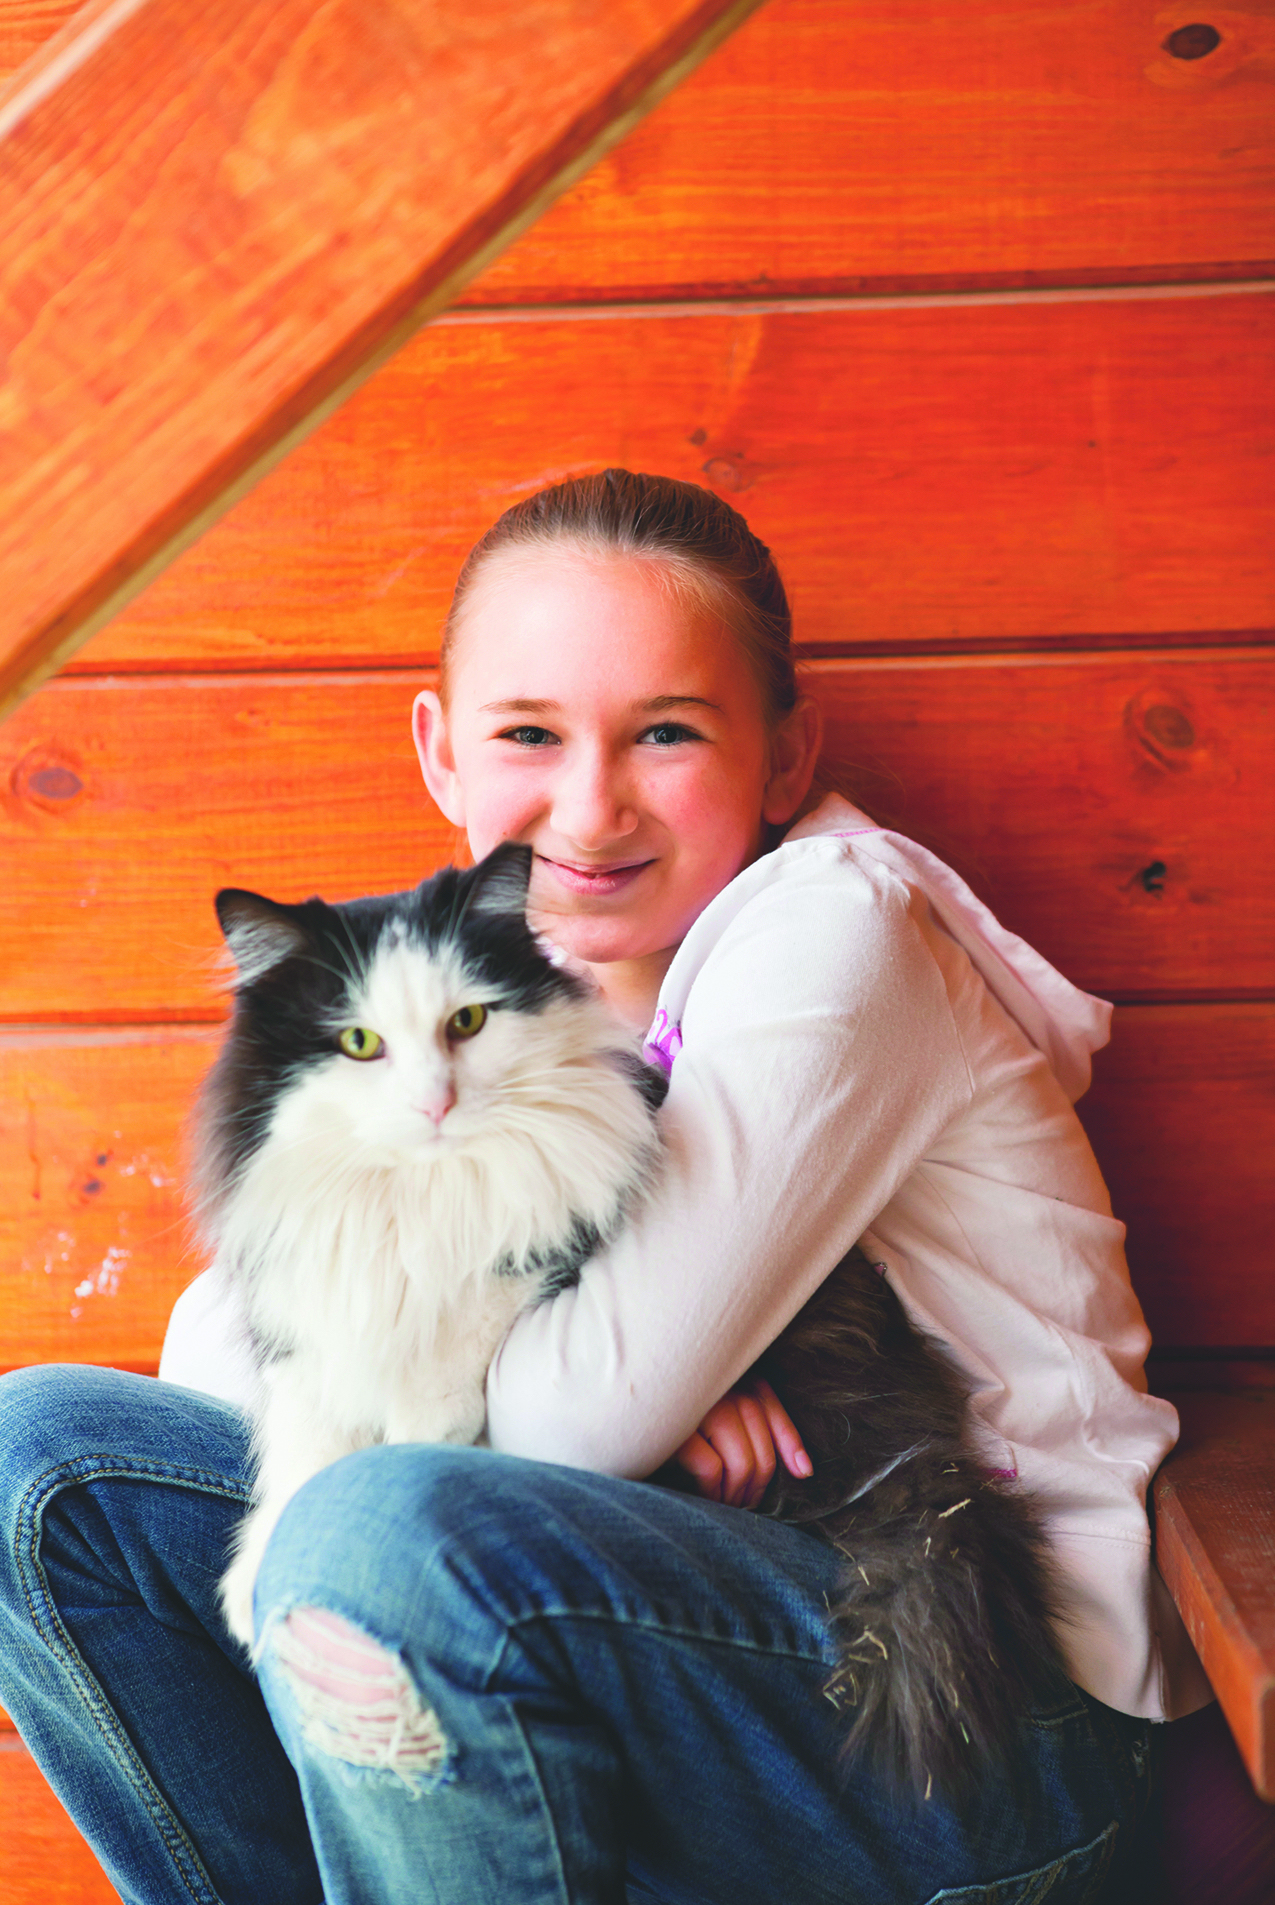 How you can benefit from having a pet